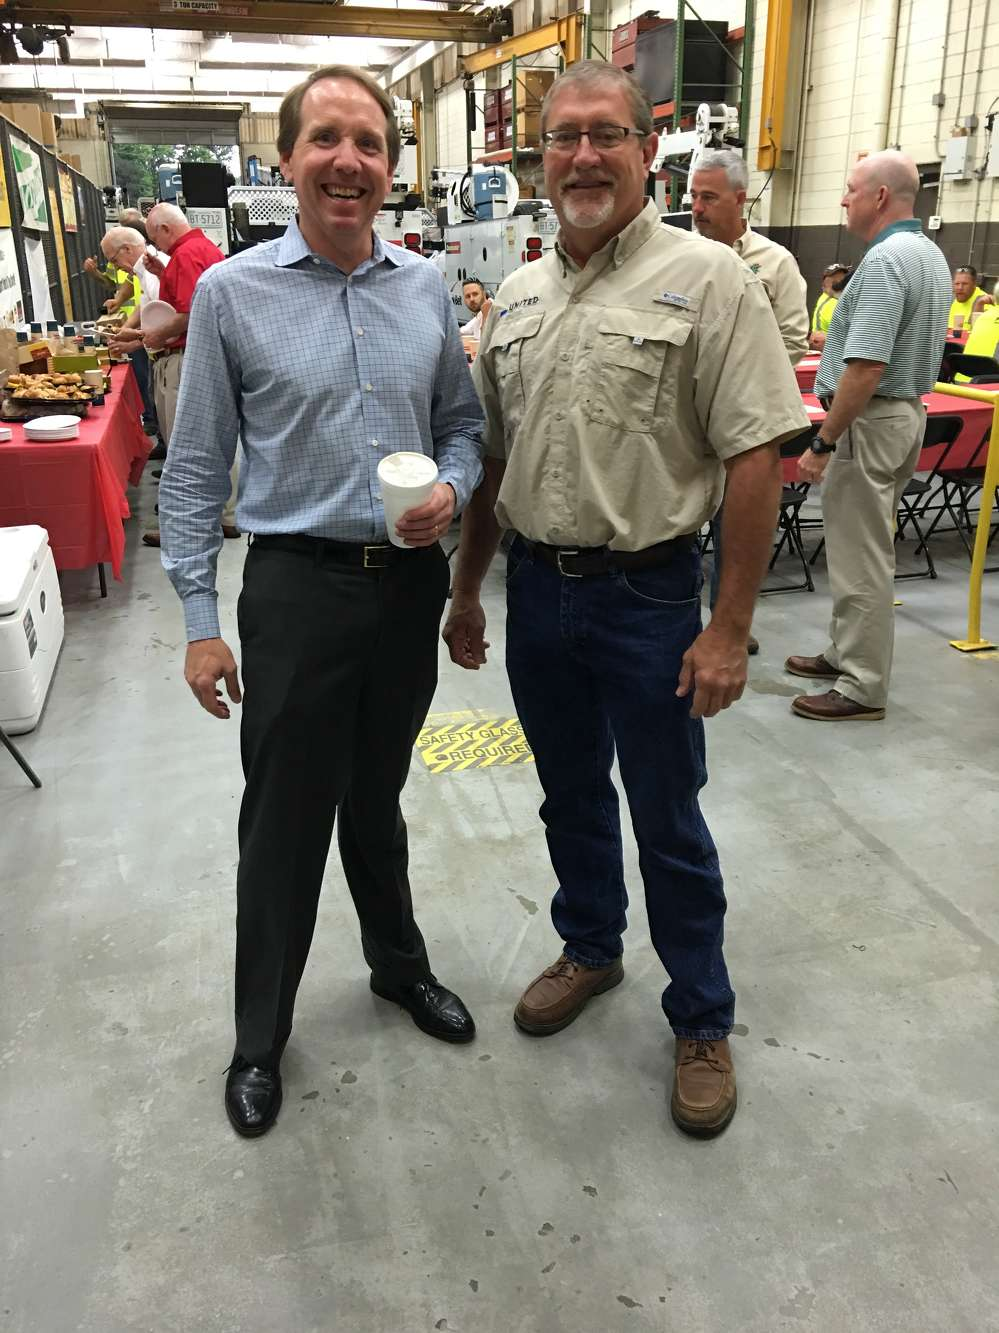 Ed Weisiger Jr. (L), president of Pinnacle Cranes and Carolina Tractor, welcomes Keith Ernandez of United Infrastructure Group in Great Falls, S.C.